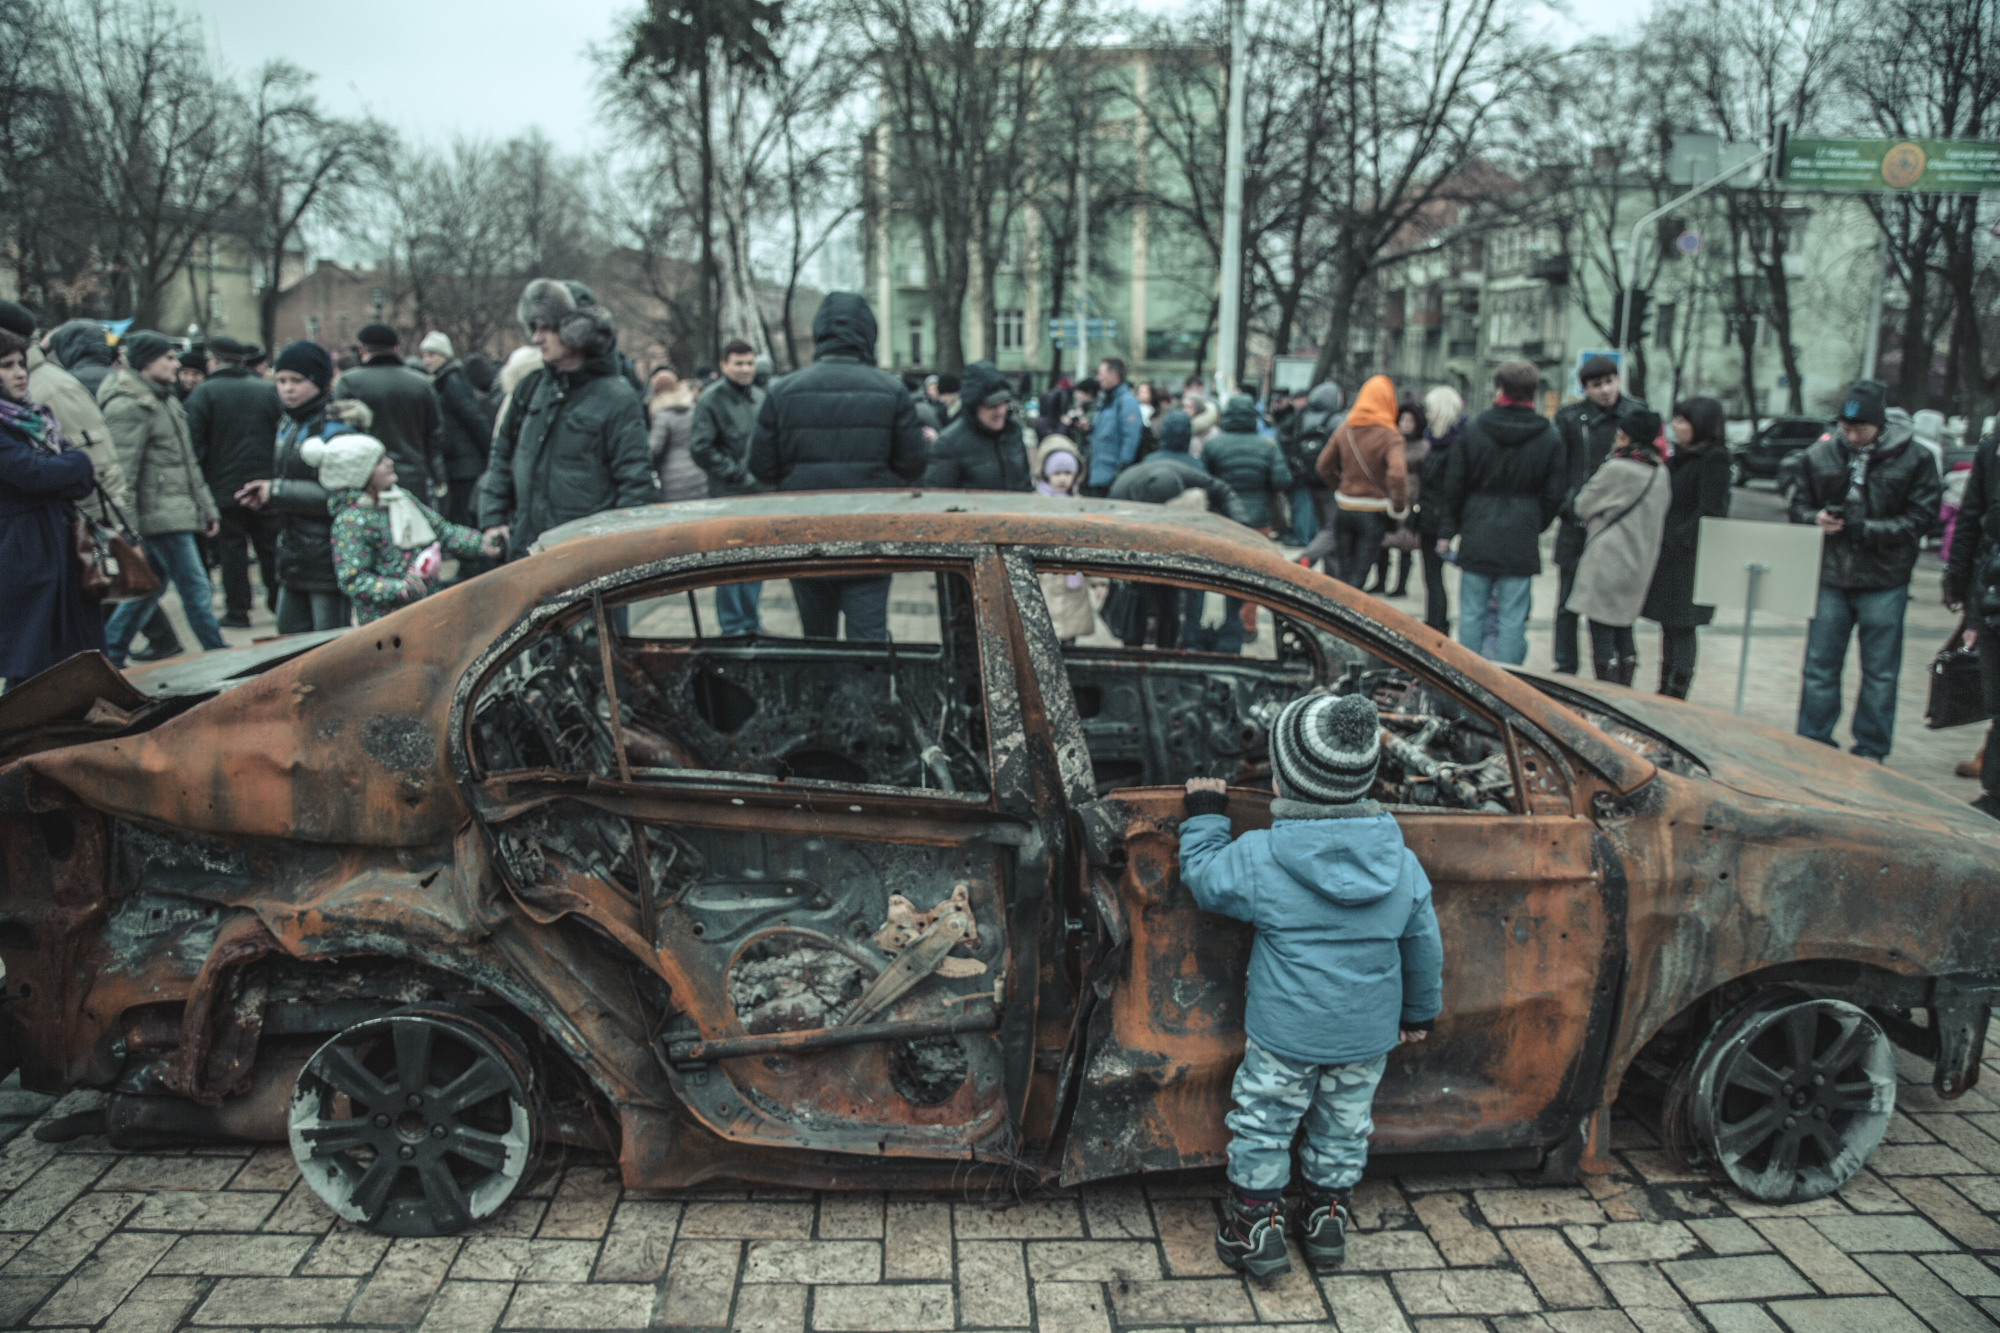 © Sam Asaert - Child looking at a burned out vehicle